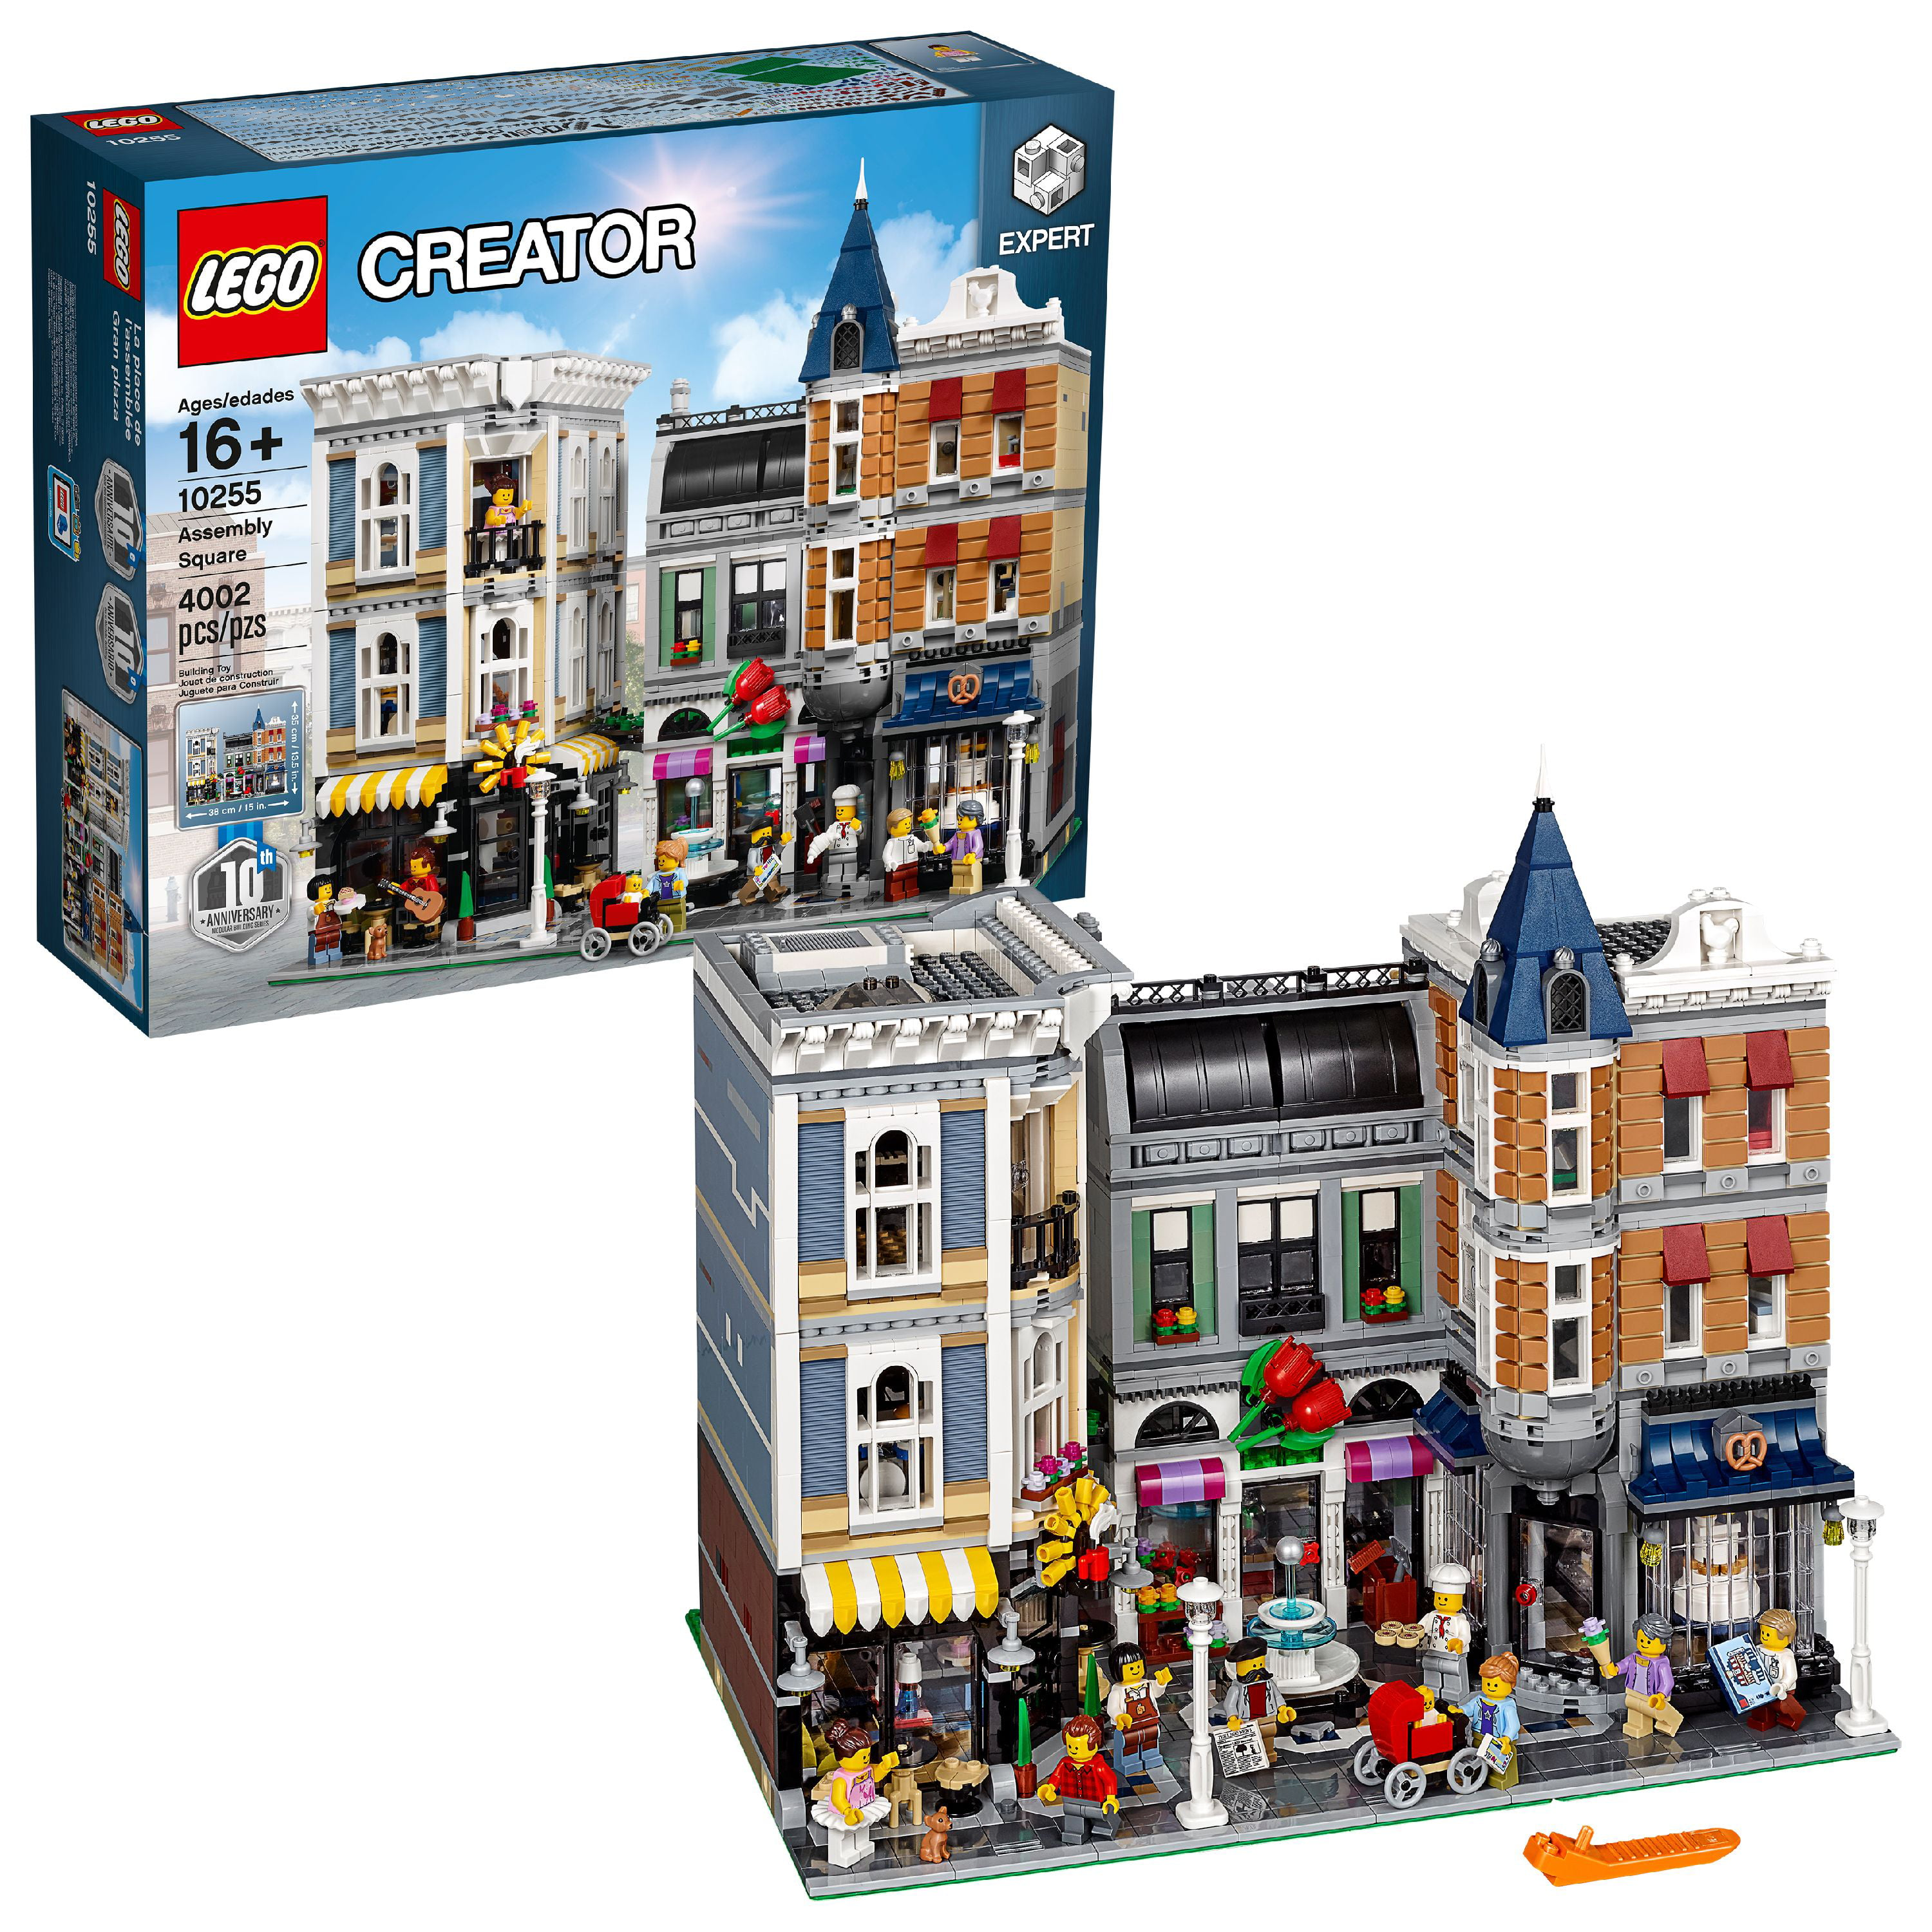 Lego Creator Expert Assembly Square 10255 by LEGO System Inc